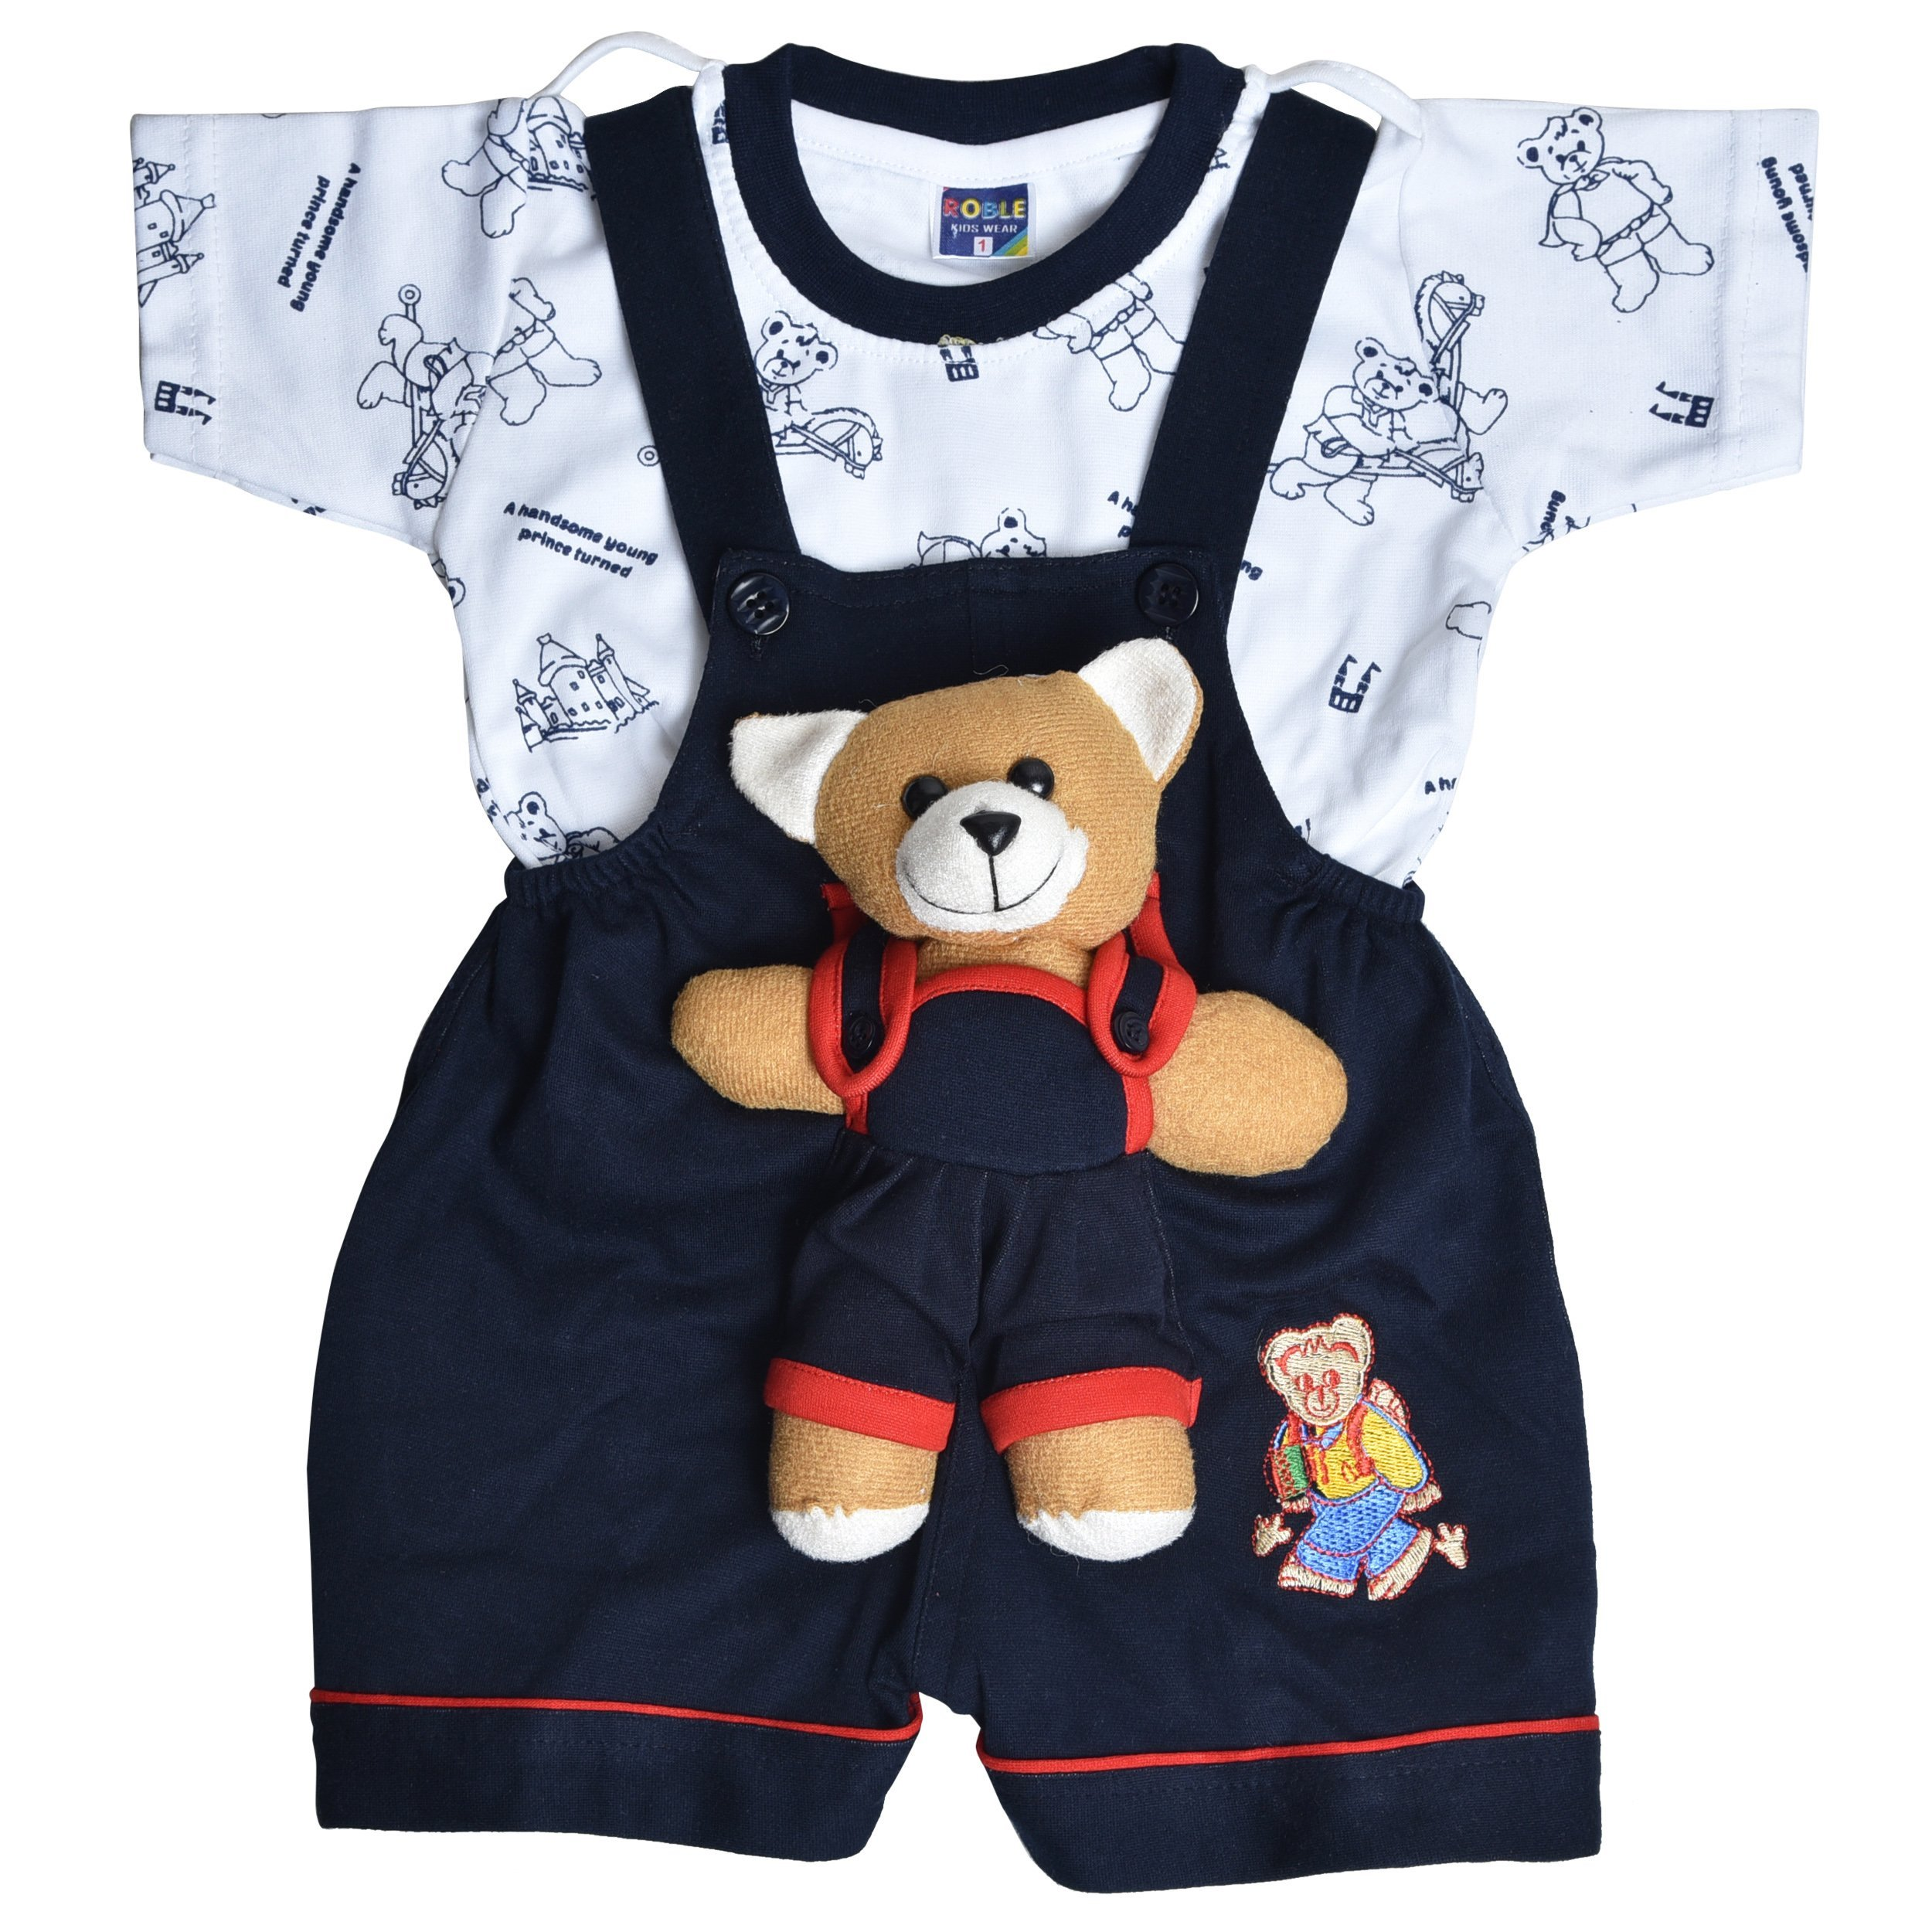 Roble Party Wear Romper Baba Suit Dungree Jumpsuit Blue Outfits For Newbron Babies Boys & Girls 6 Months -2 Years product image